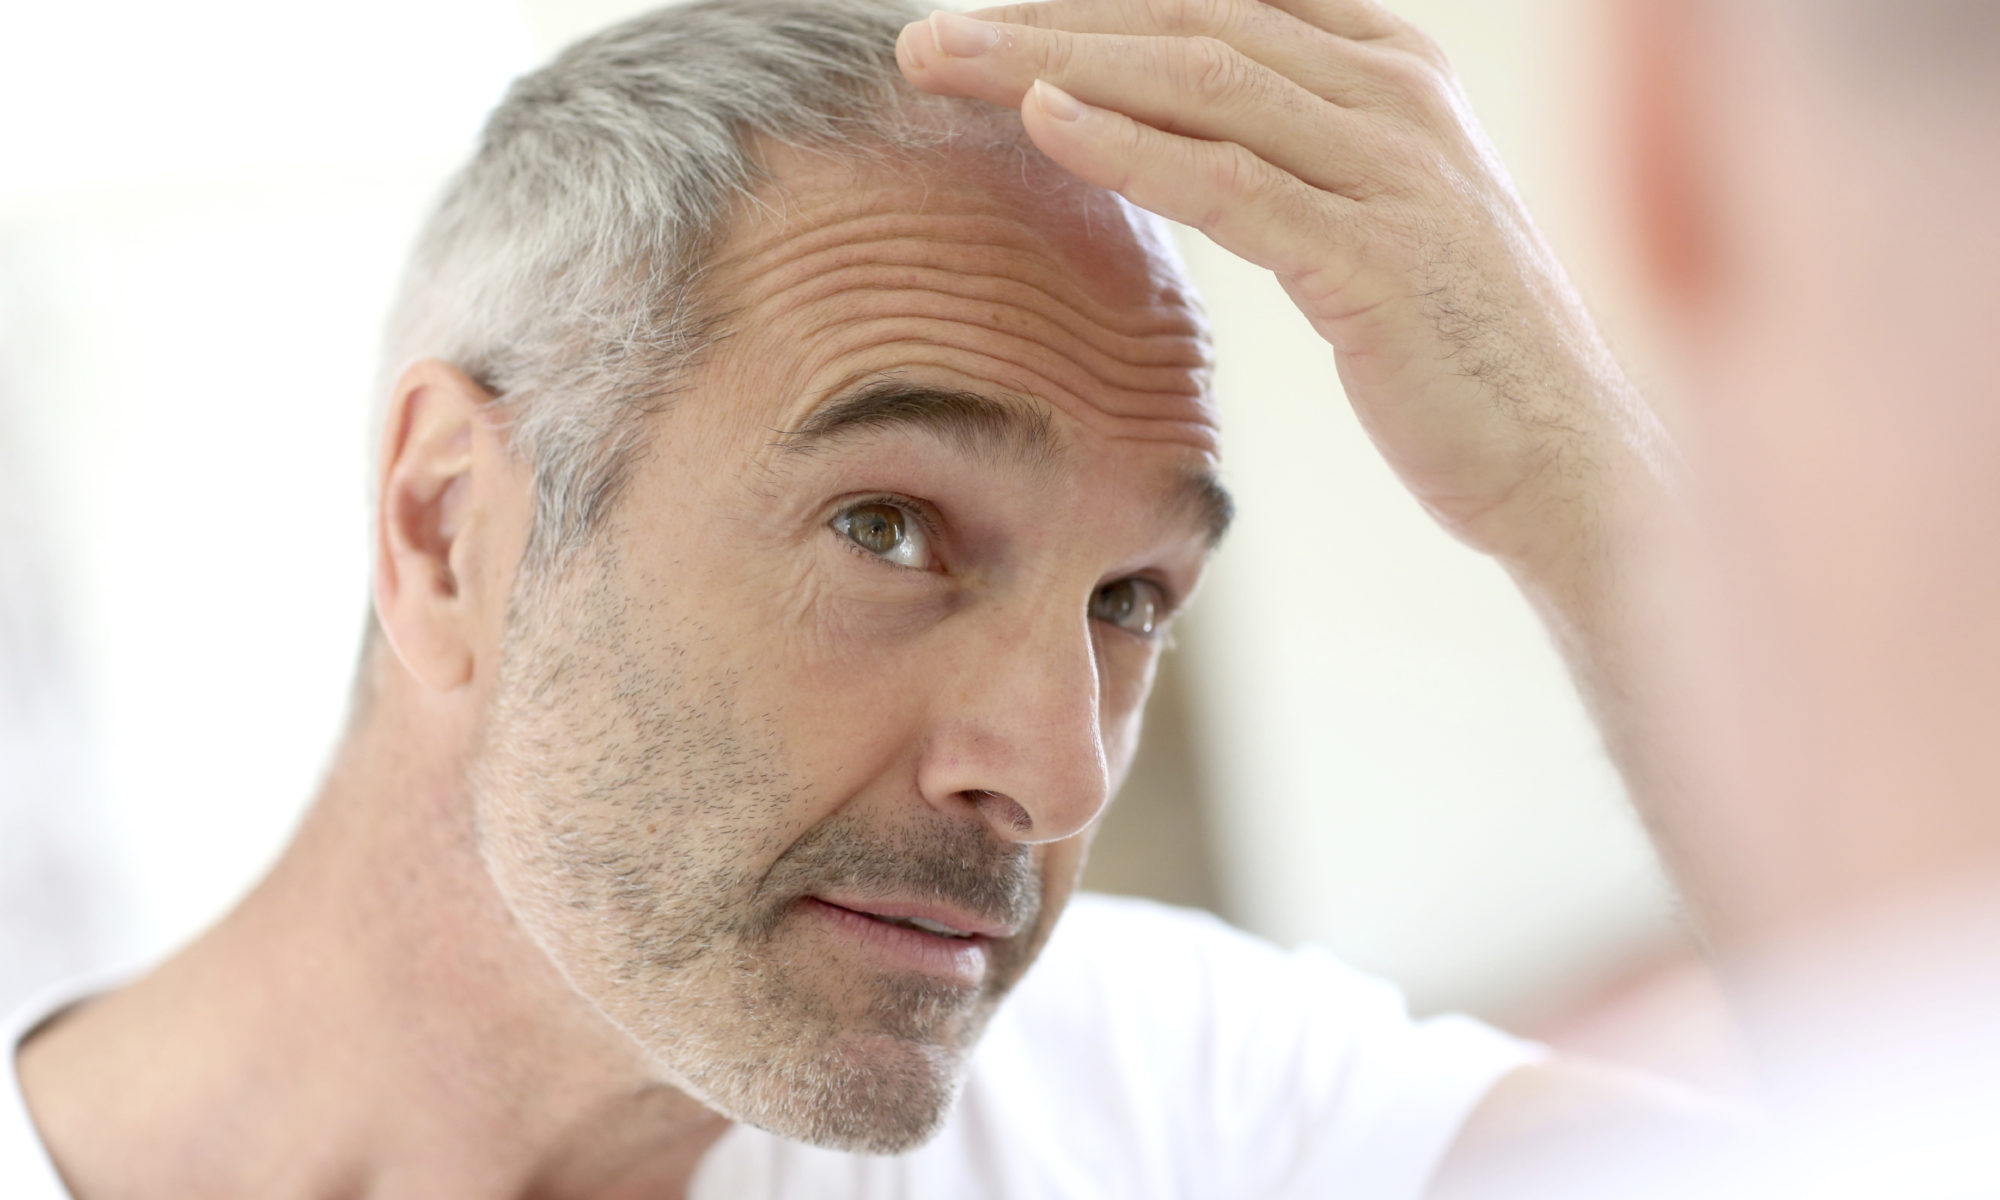 Hair Loss Treatment Northern Colorado